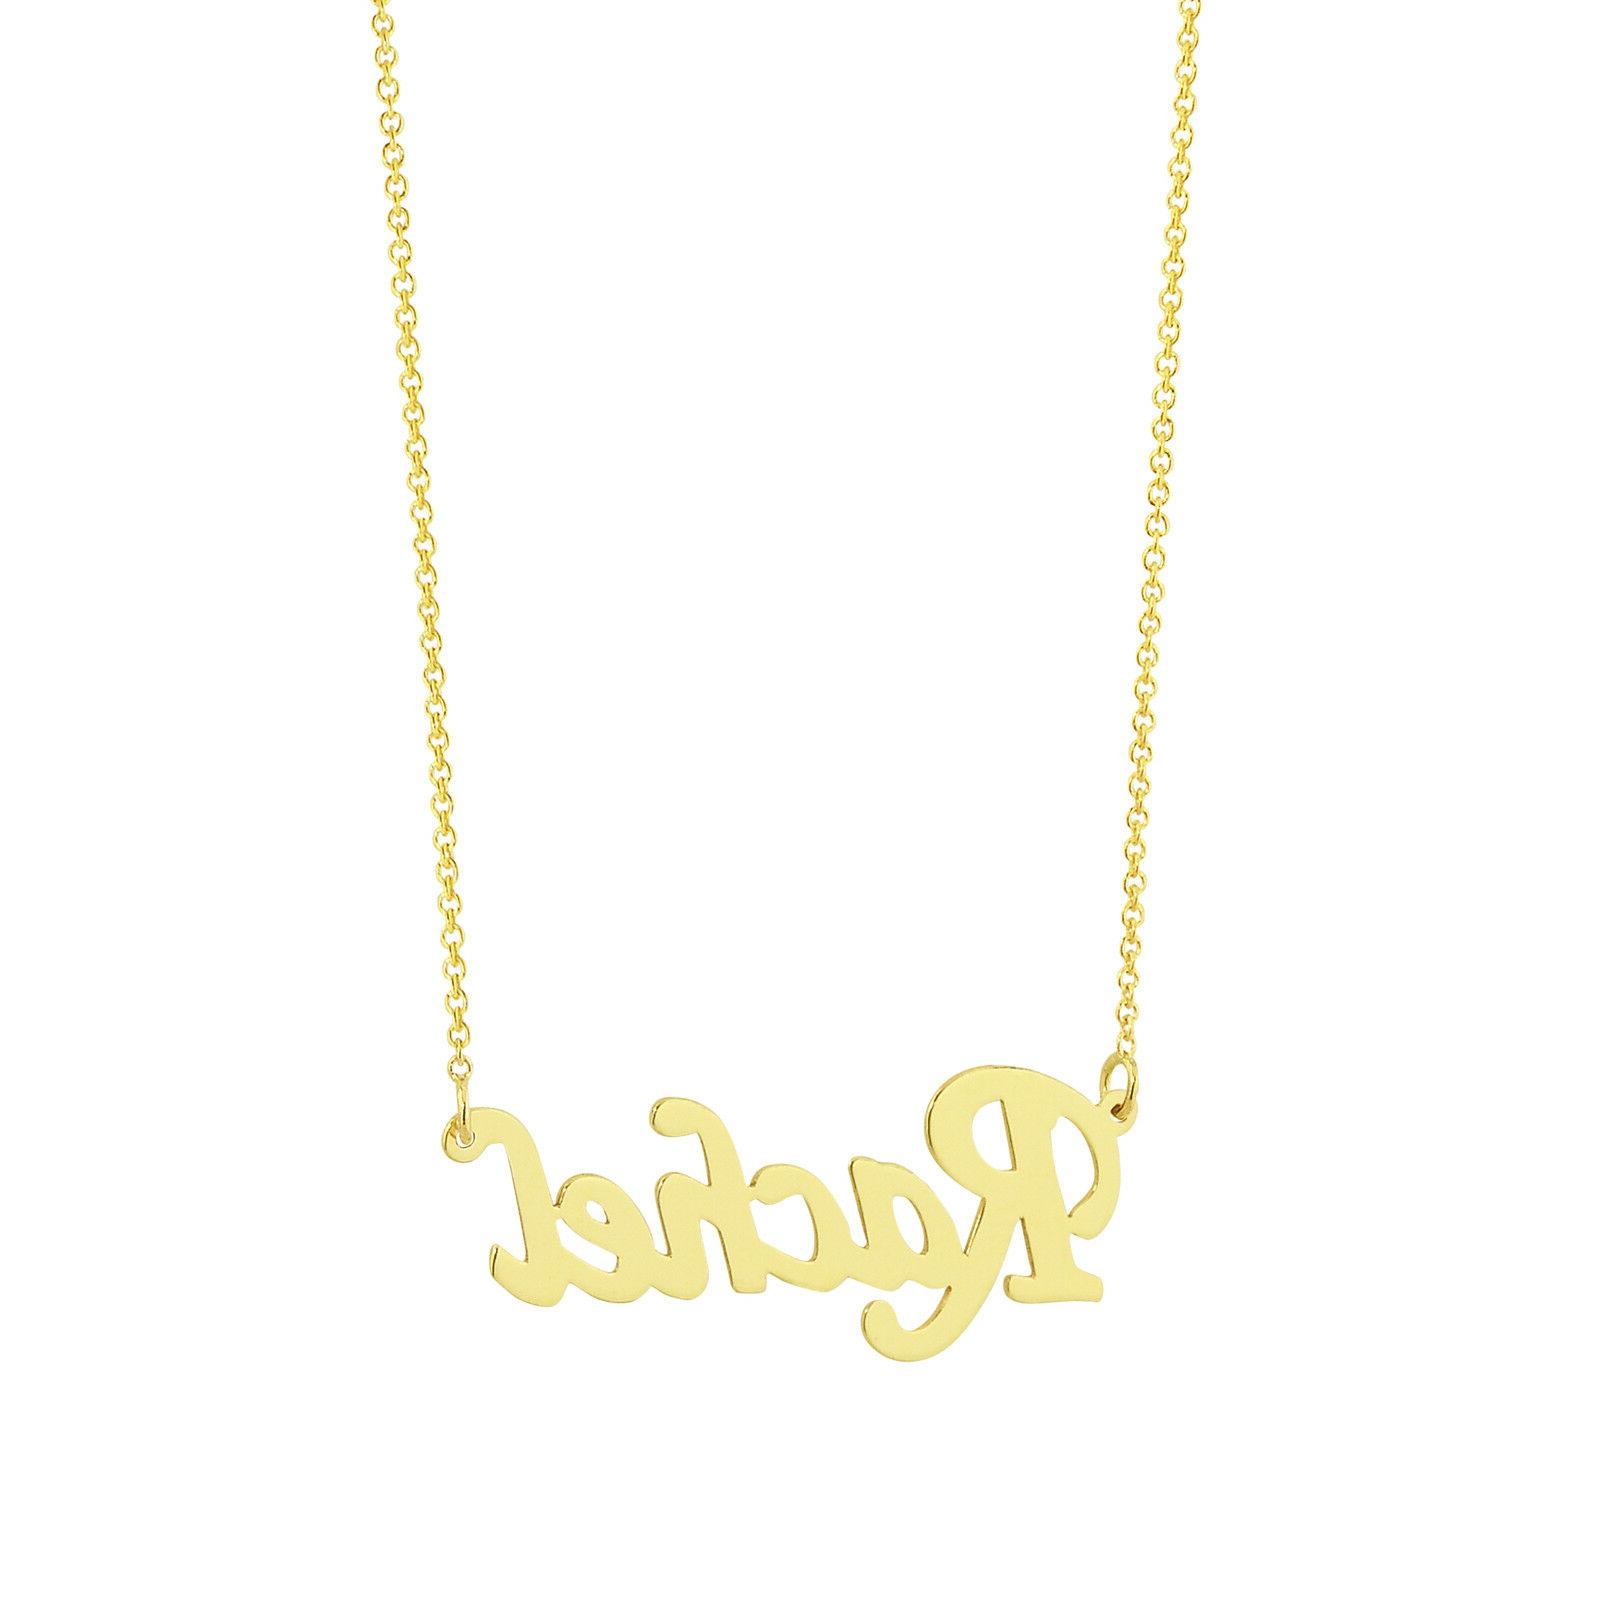 Dainty Solid Gold Name Necklace, 1 Personalized Laser GC51